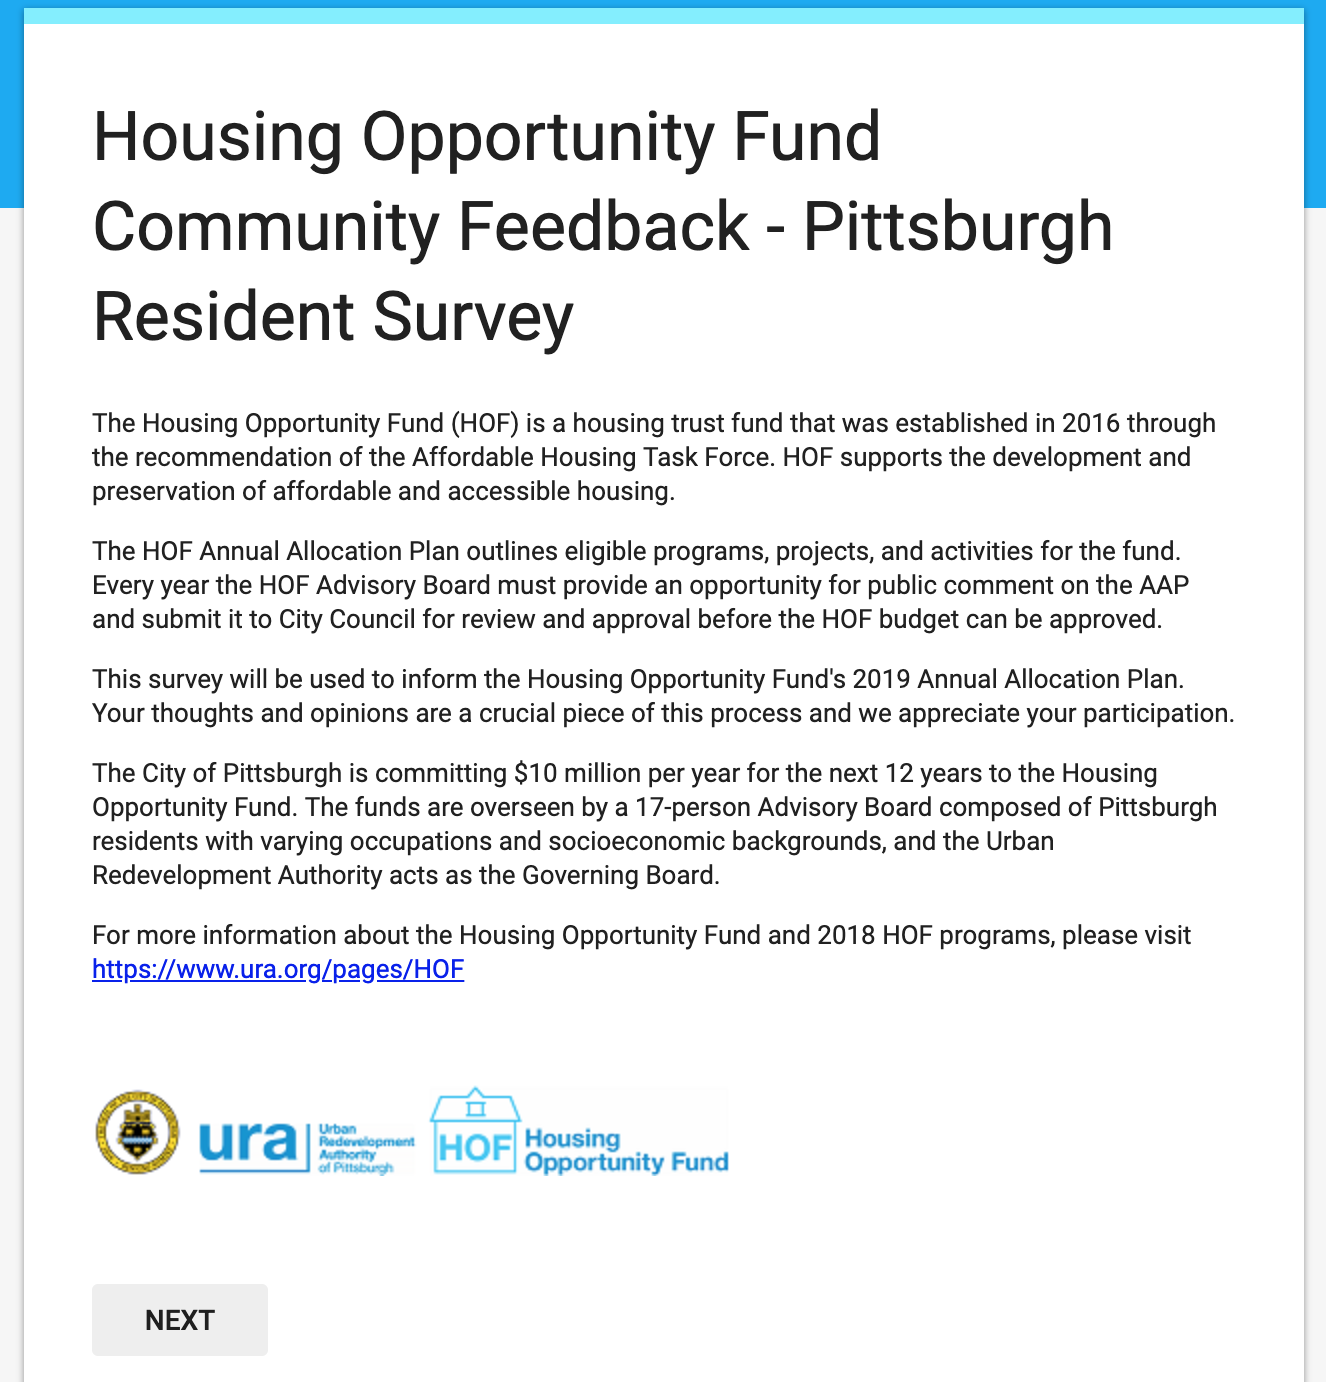 Community] Housing Opportunity Fund Community Feedback Survey